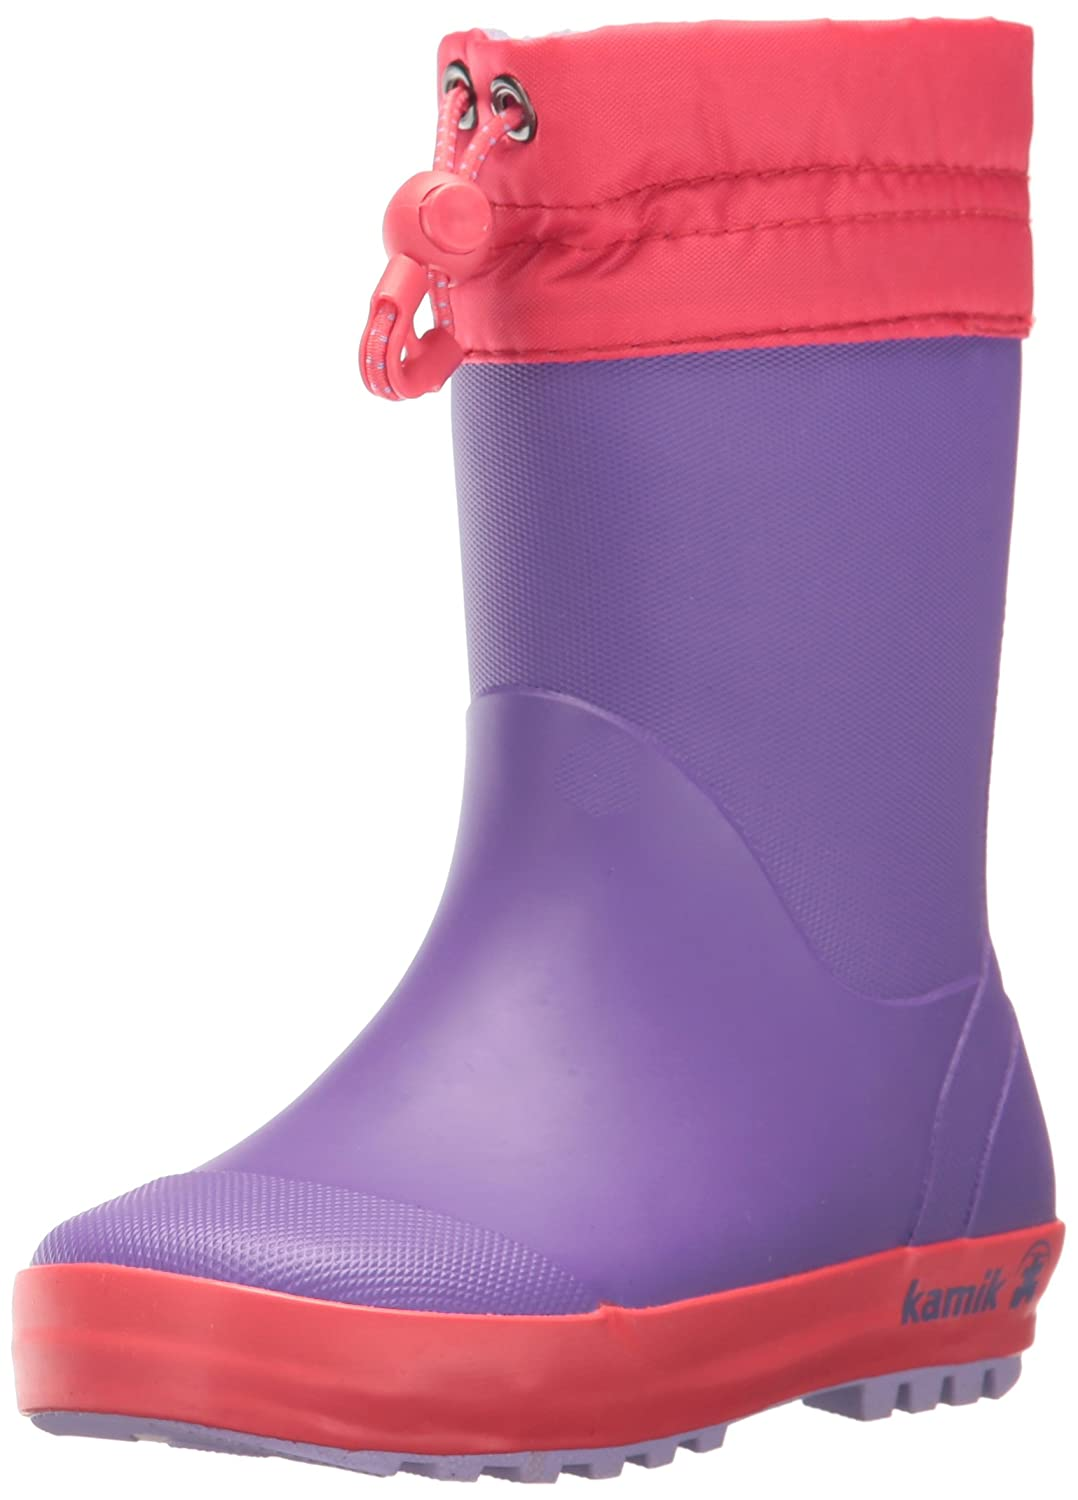 Kamik Kids' Drizzly Snow Boot